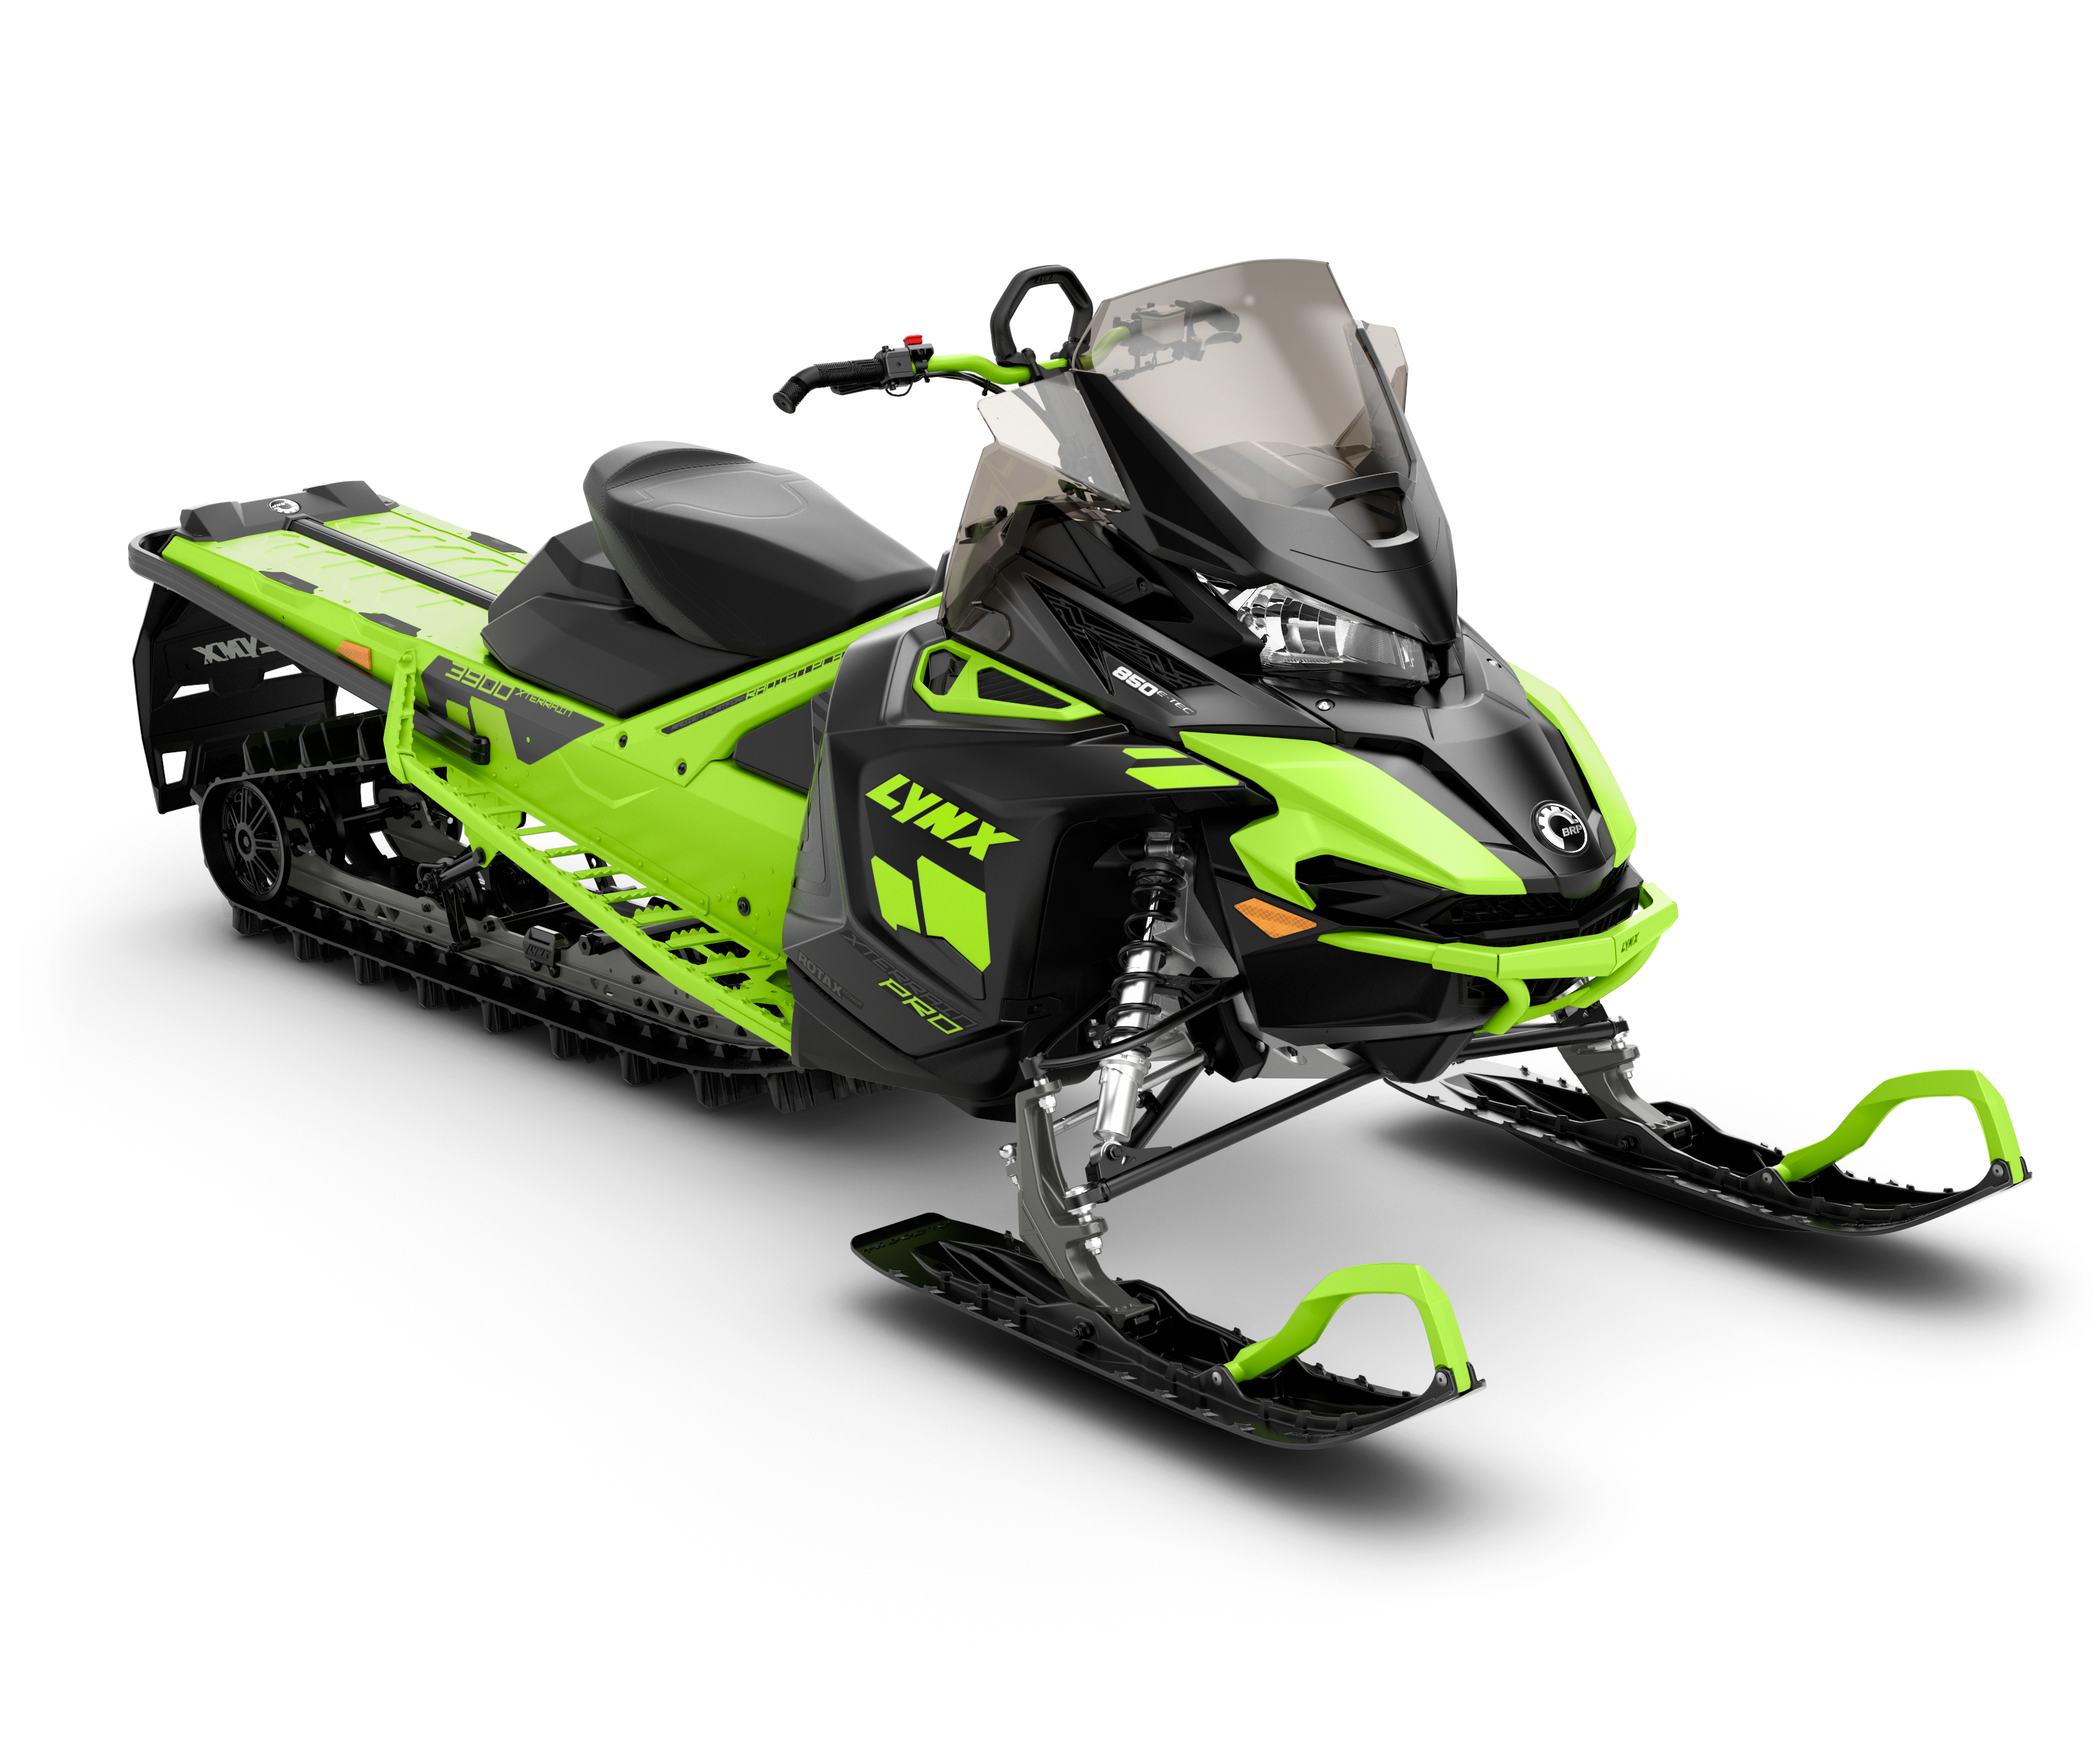 Xterrain Snowmobile Model 2021